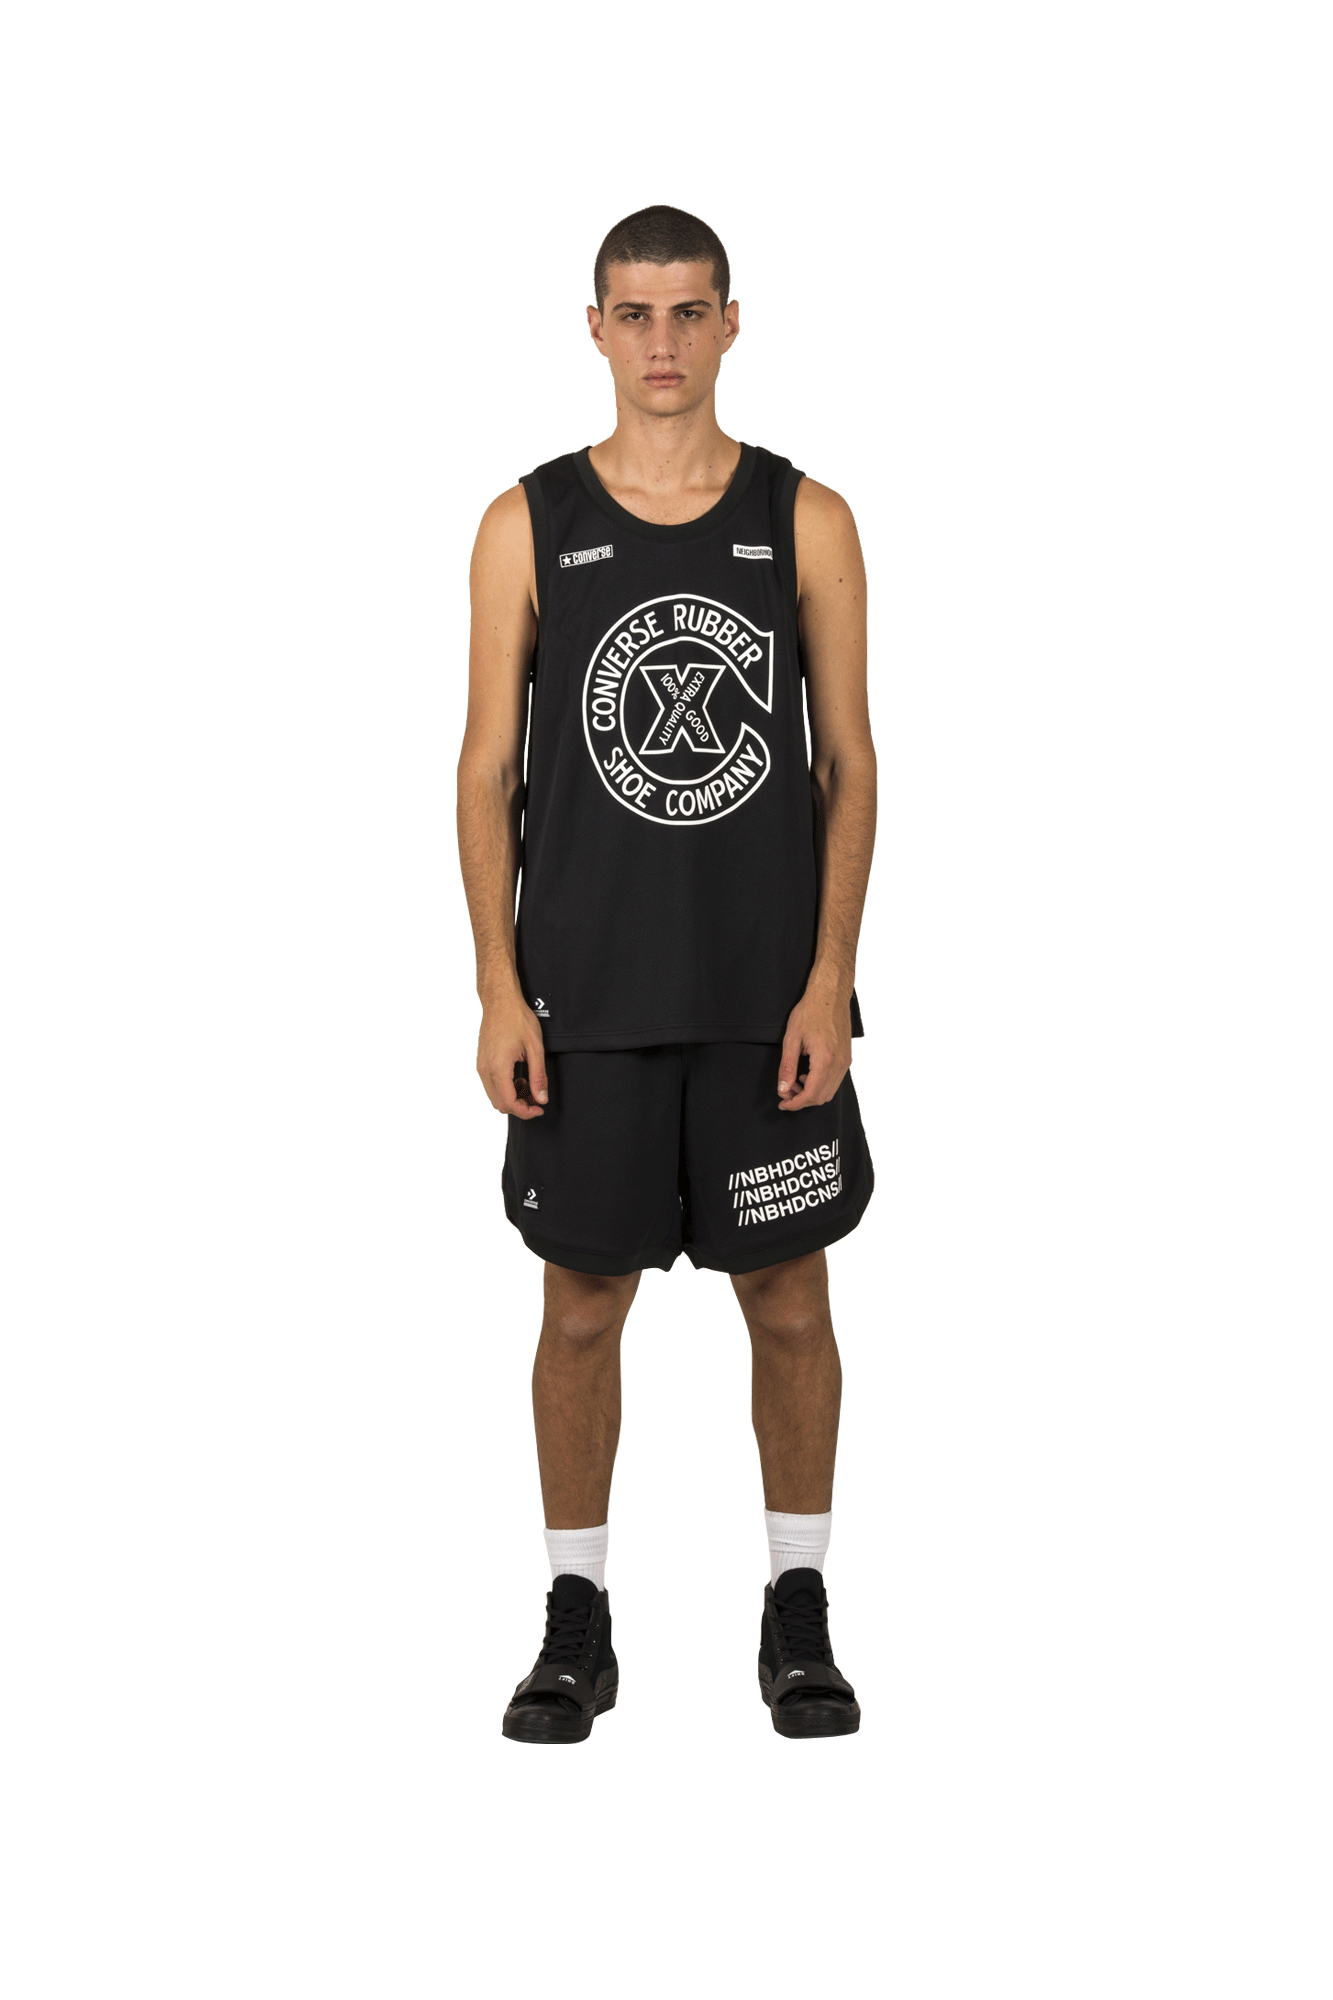 Mesh Jersey x Neighborhood Black